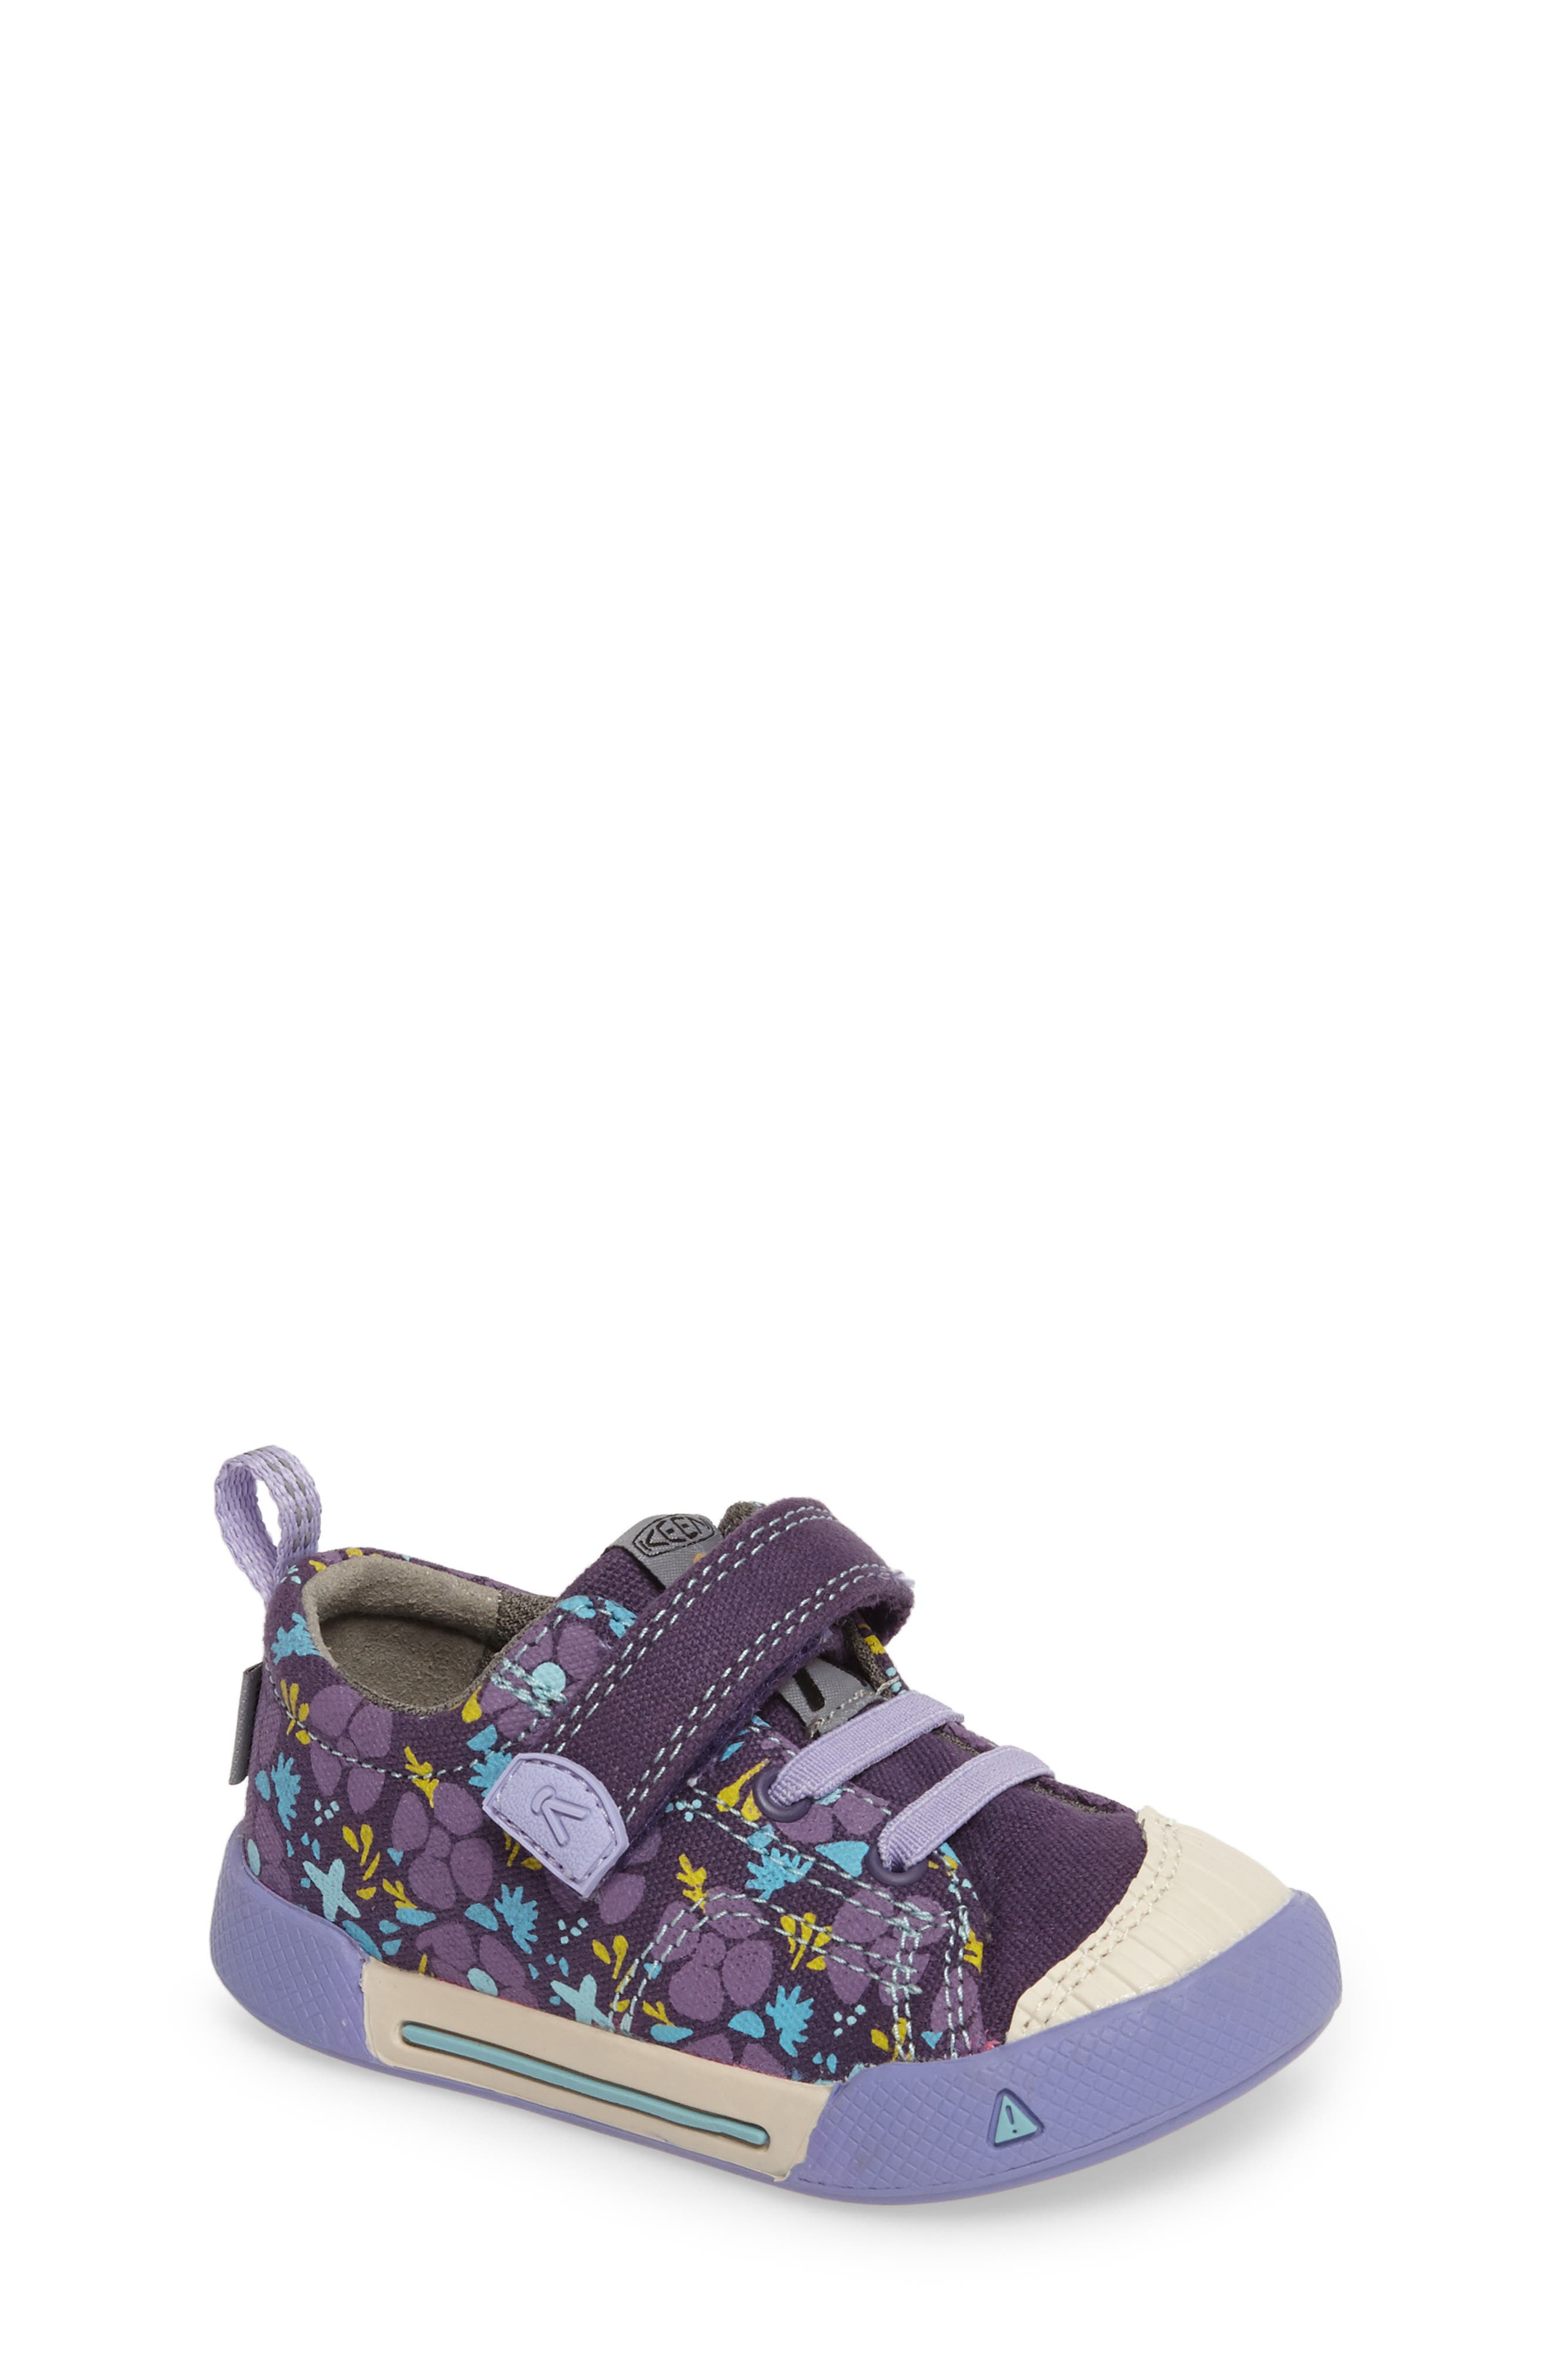 Keen Encanto Finley Sneaker (Baby, Walker, Toddler, Little Kid & Big Kid)